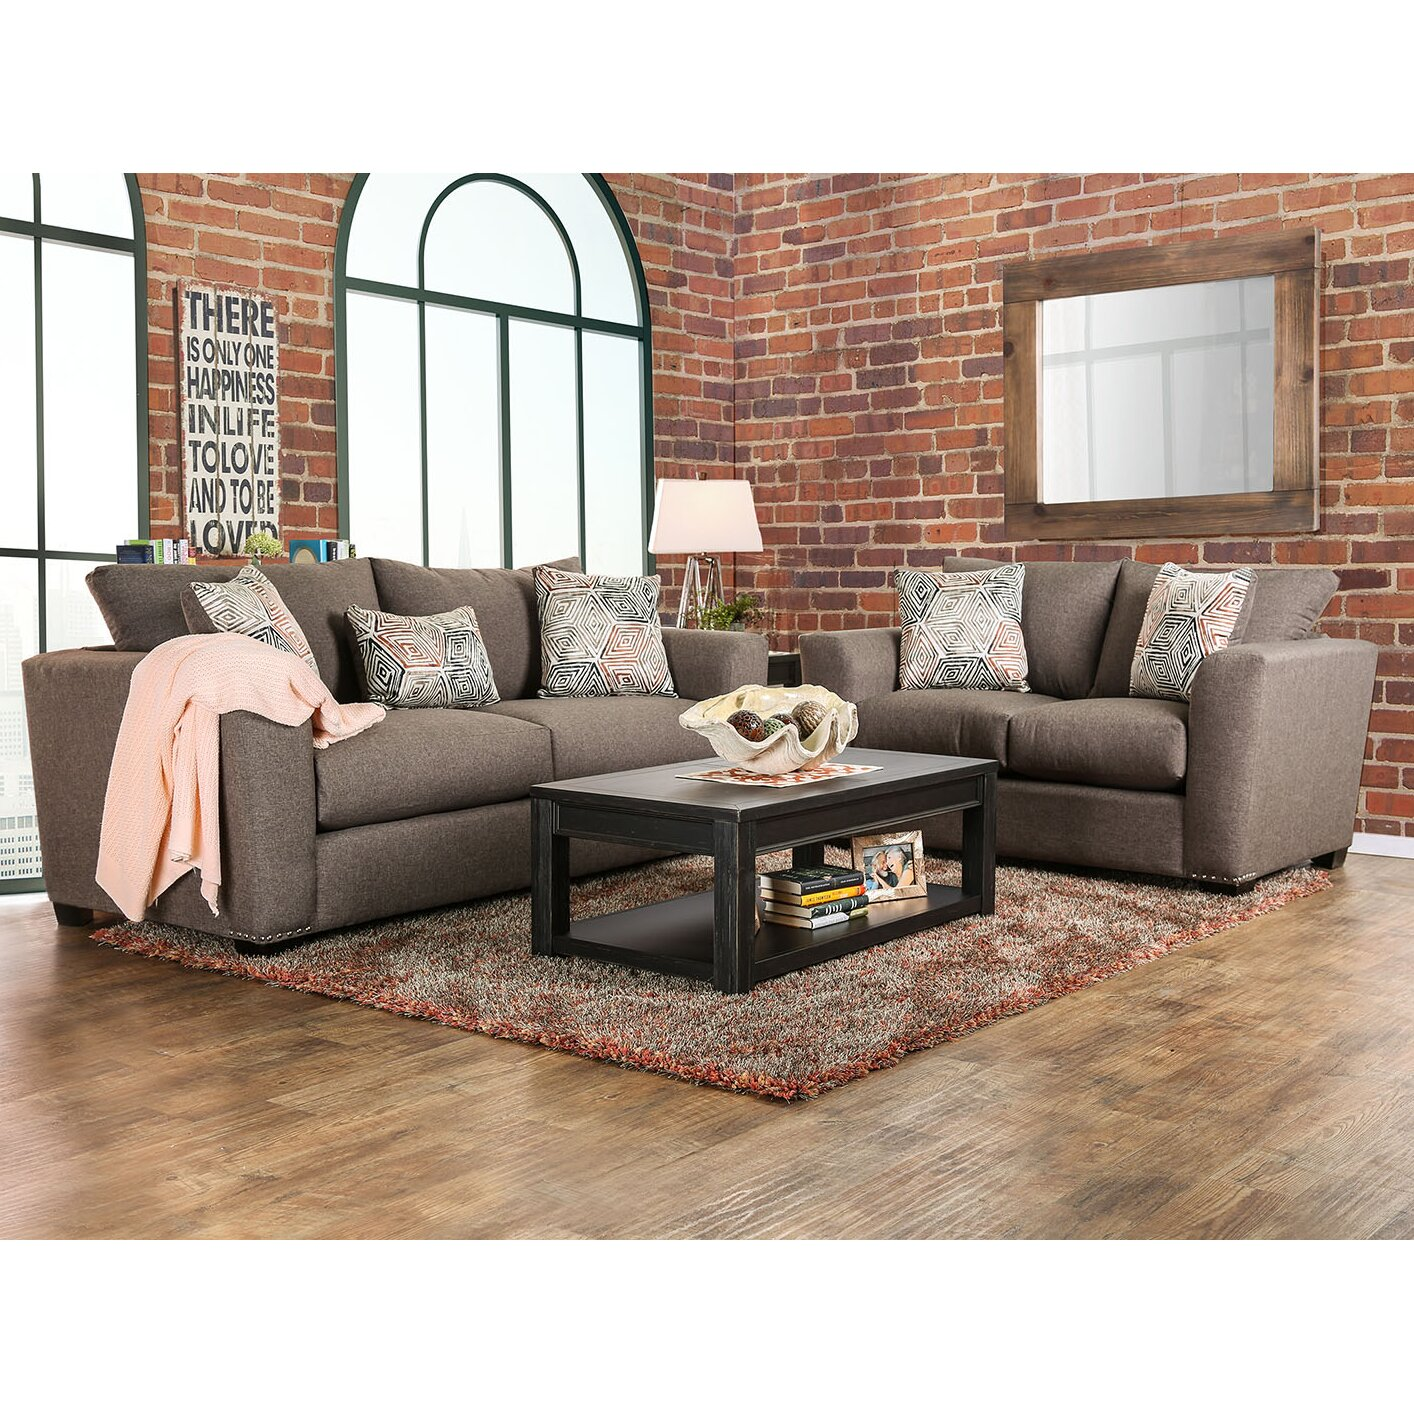 A j homes studio bensen 3 piece living room set wayfair for 3 piece living room set